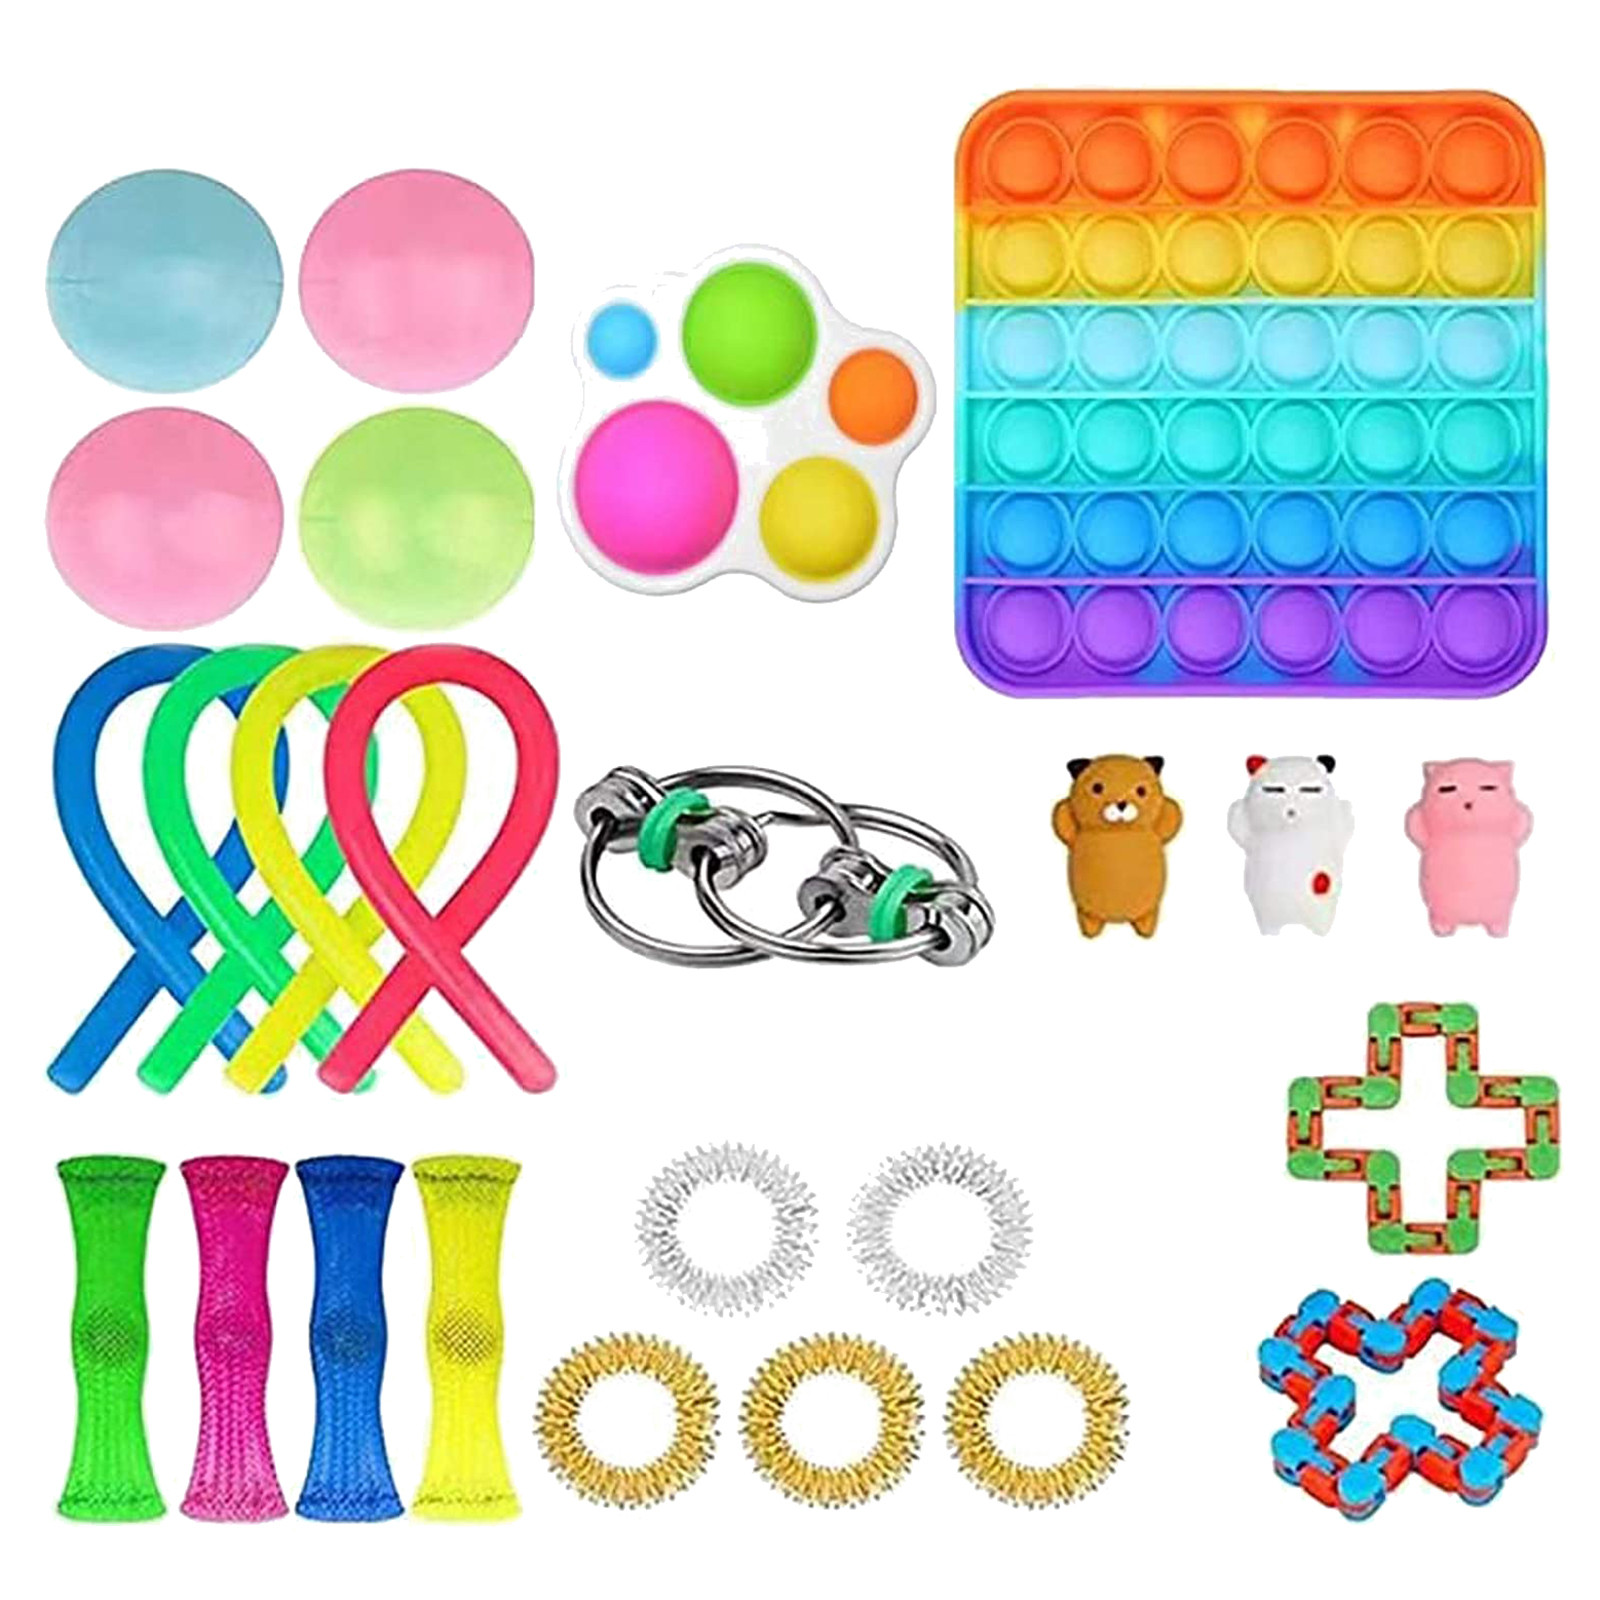 25 Pcs Fidges Fidget Toy Set Cheap Sensory Fidget Toys Pack for Kids or Adults Squishy